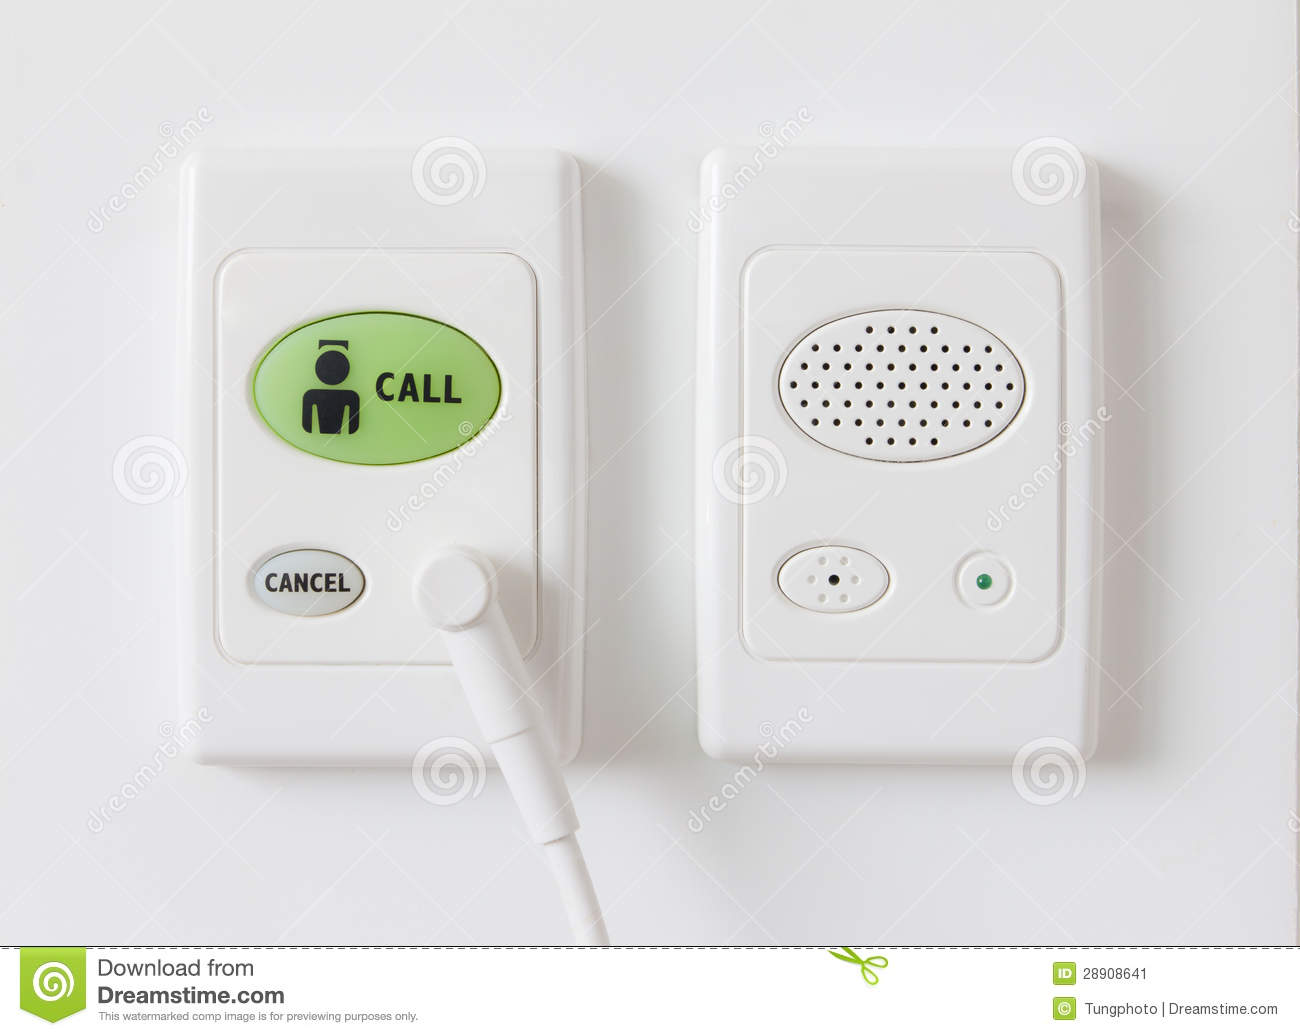 Carbon Monoxide Detector likewise Wall Fan Electrical Symbol as well Simple Scr Controlled Water Level as well Clipart MiLLLj79T moreover . on fire alarm buzzer